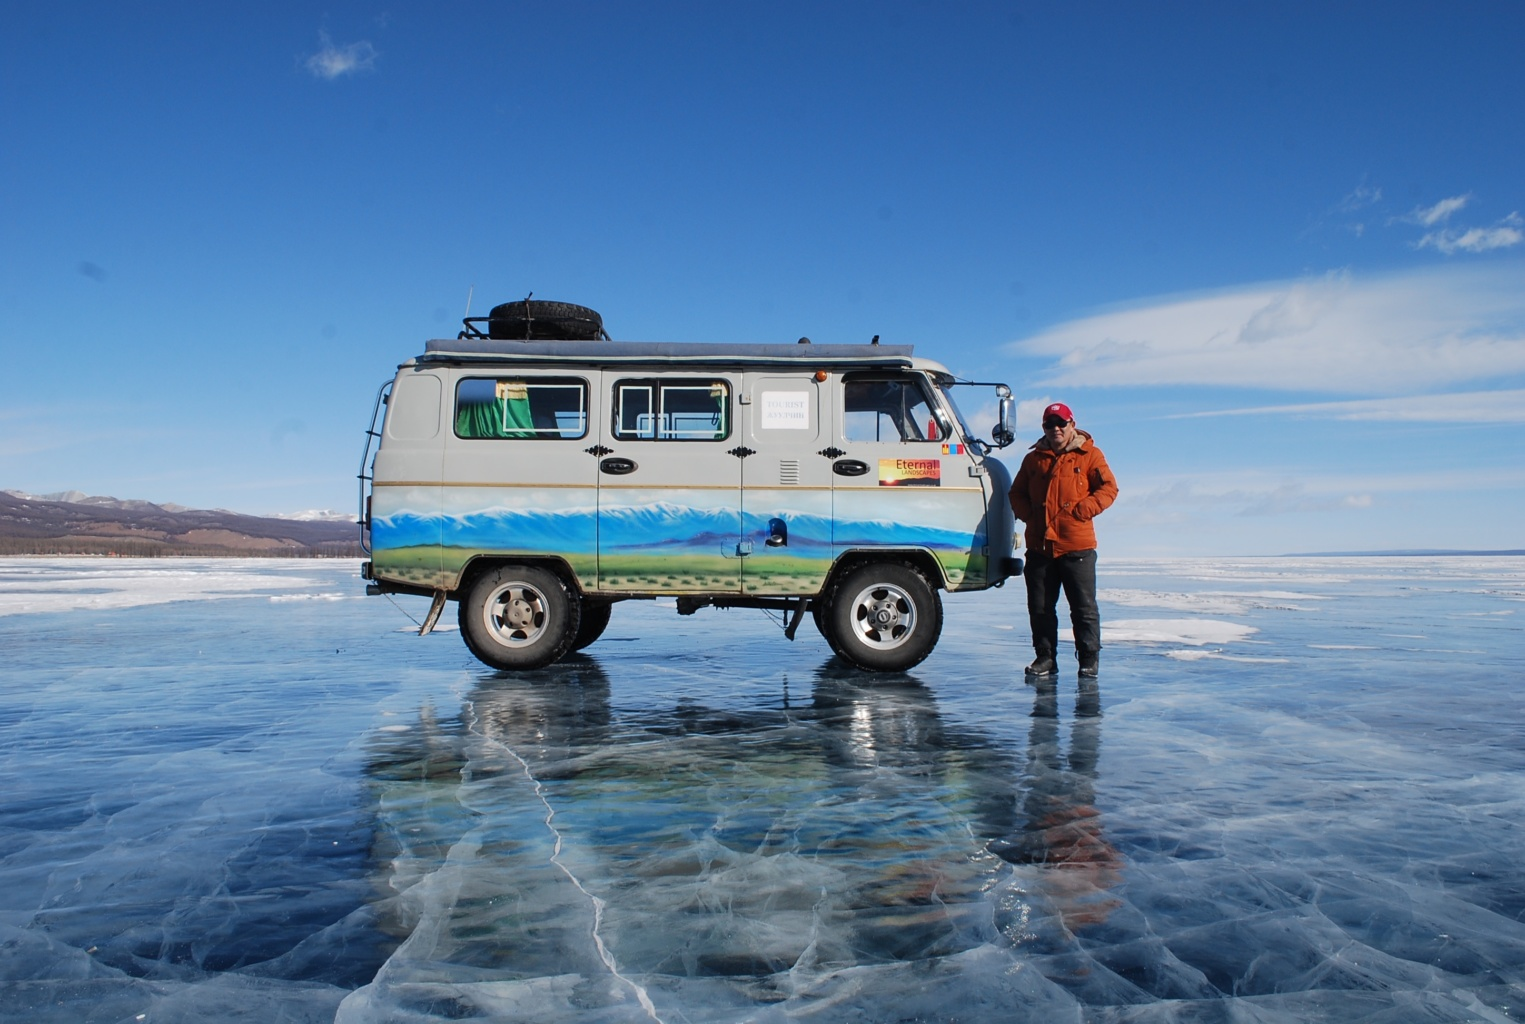 The frozen winter surfaces of Khovsgol Nuur National Park in Mongolia. In the summer, Khovsgol Nuur is perfect for swimming in Mongolia